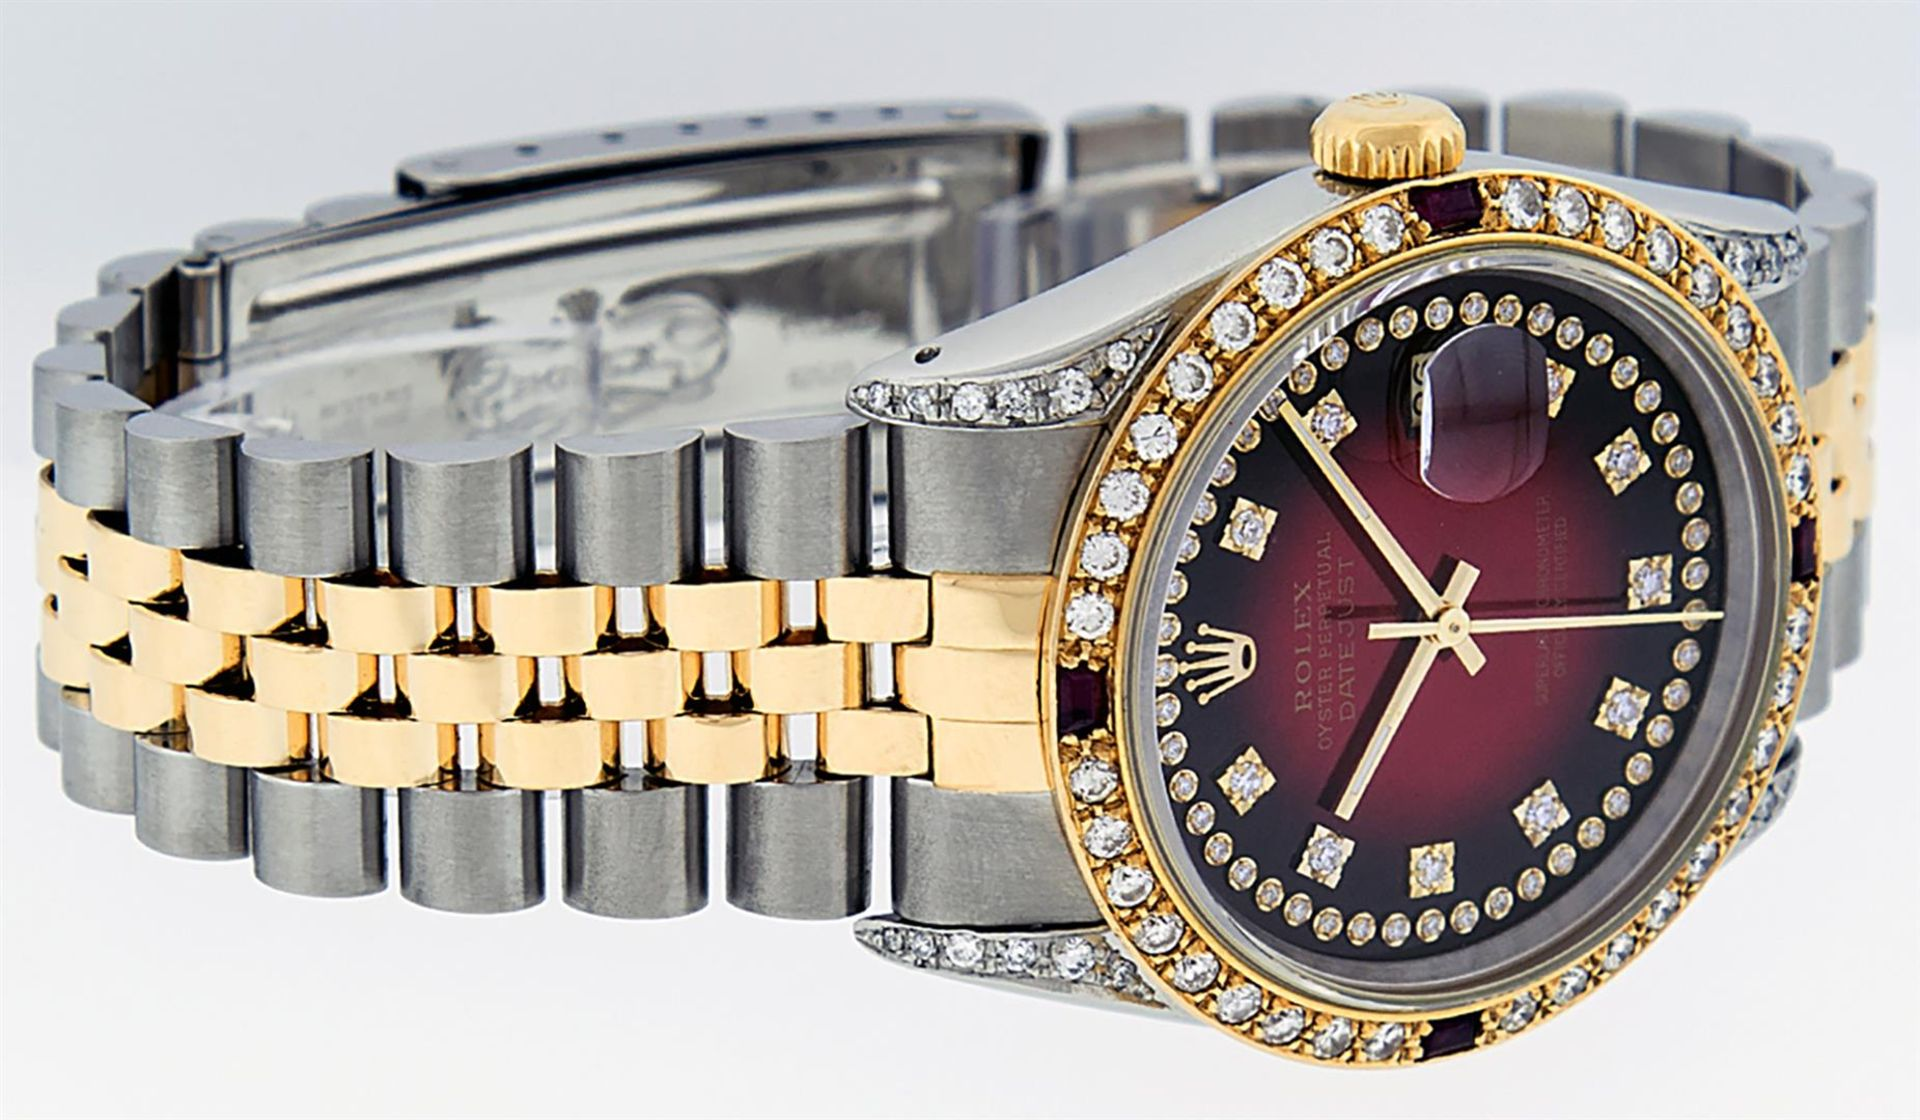 Rolex Mens 2 Tone Lugs Red Vignette Diamond String & Ruby Datejust Wristwatch - Image 4 of 9